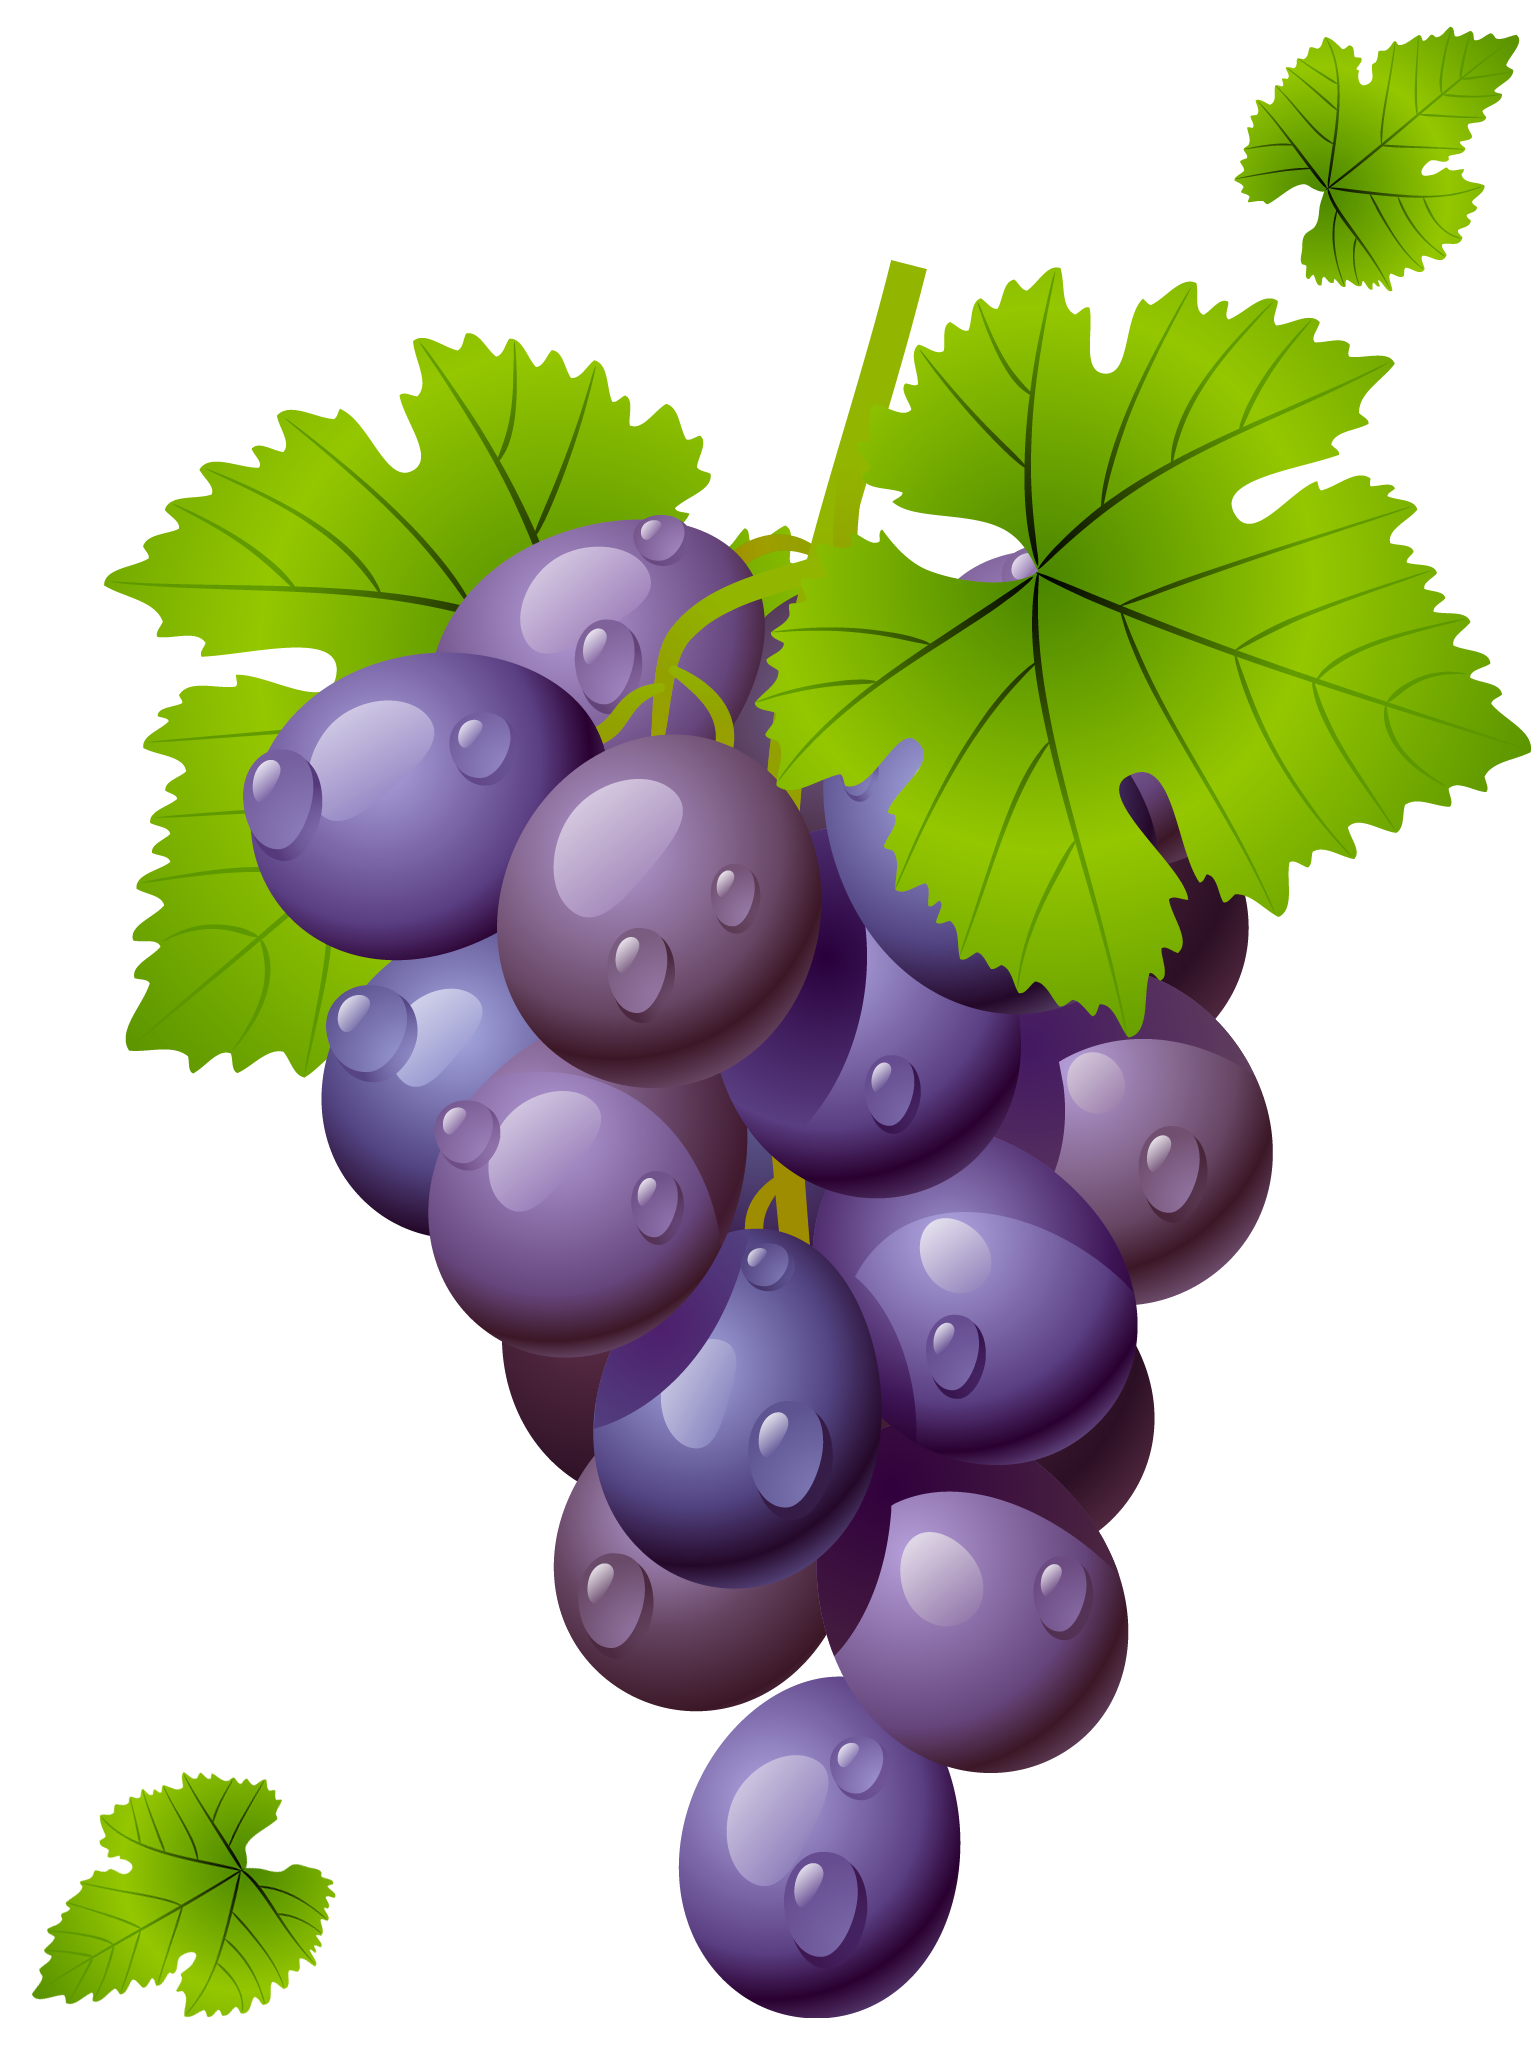 image Grape clipart. With leaves png picture